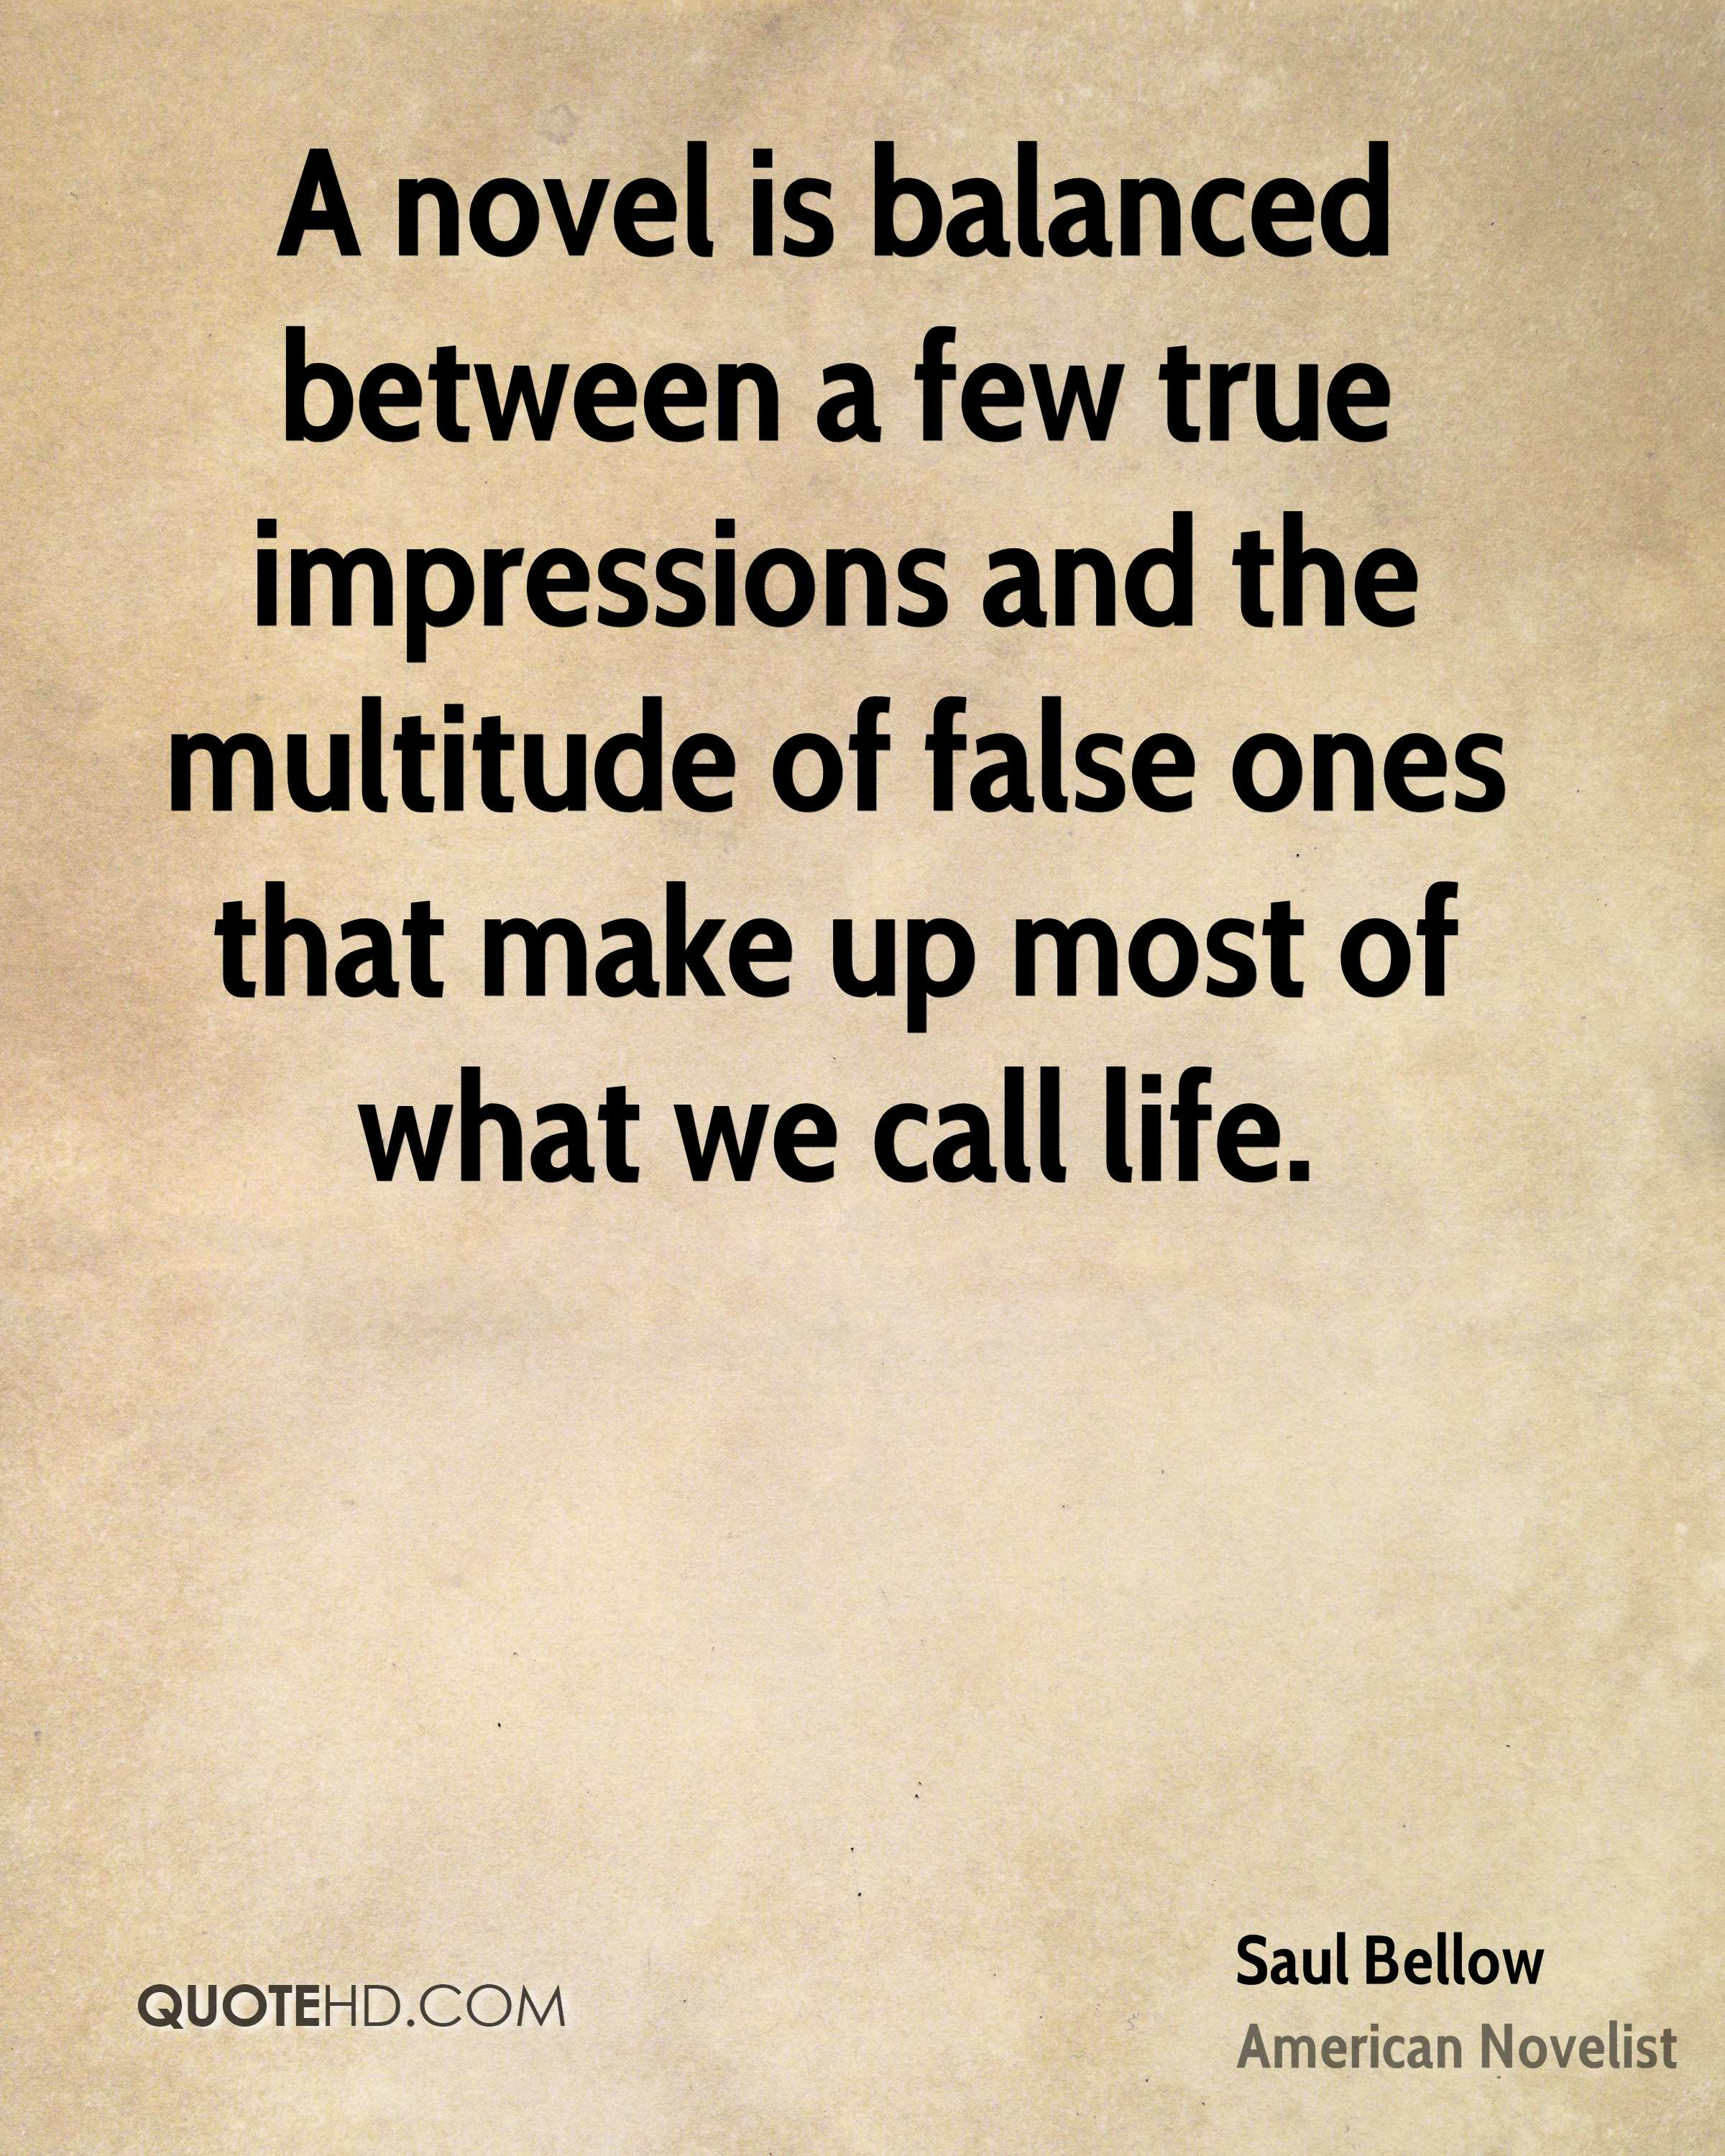 A novel is balanced between a few true impressions and the multitude of false ones that make up most of what we call life.